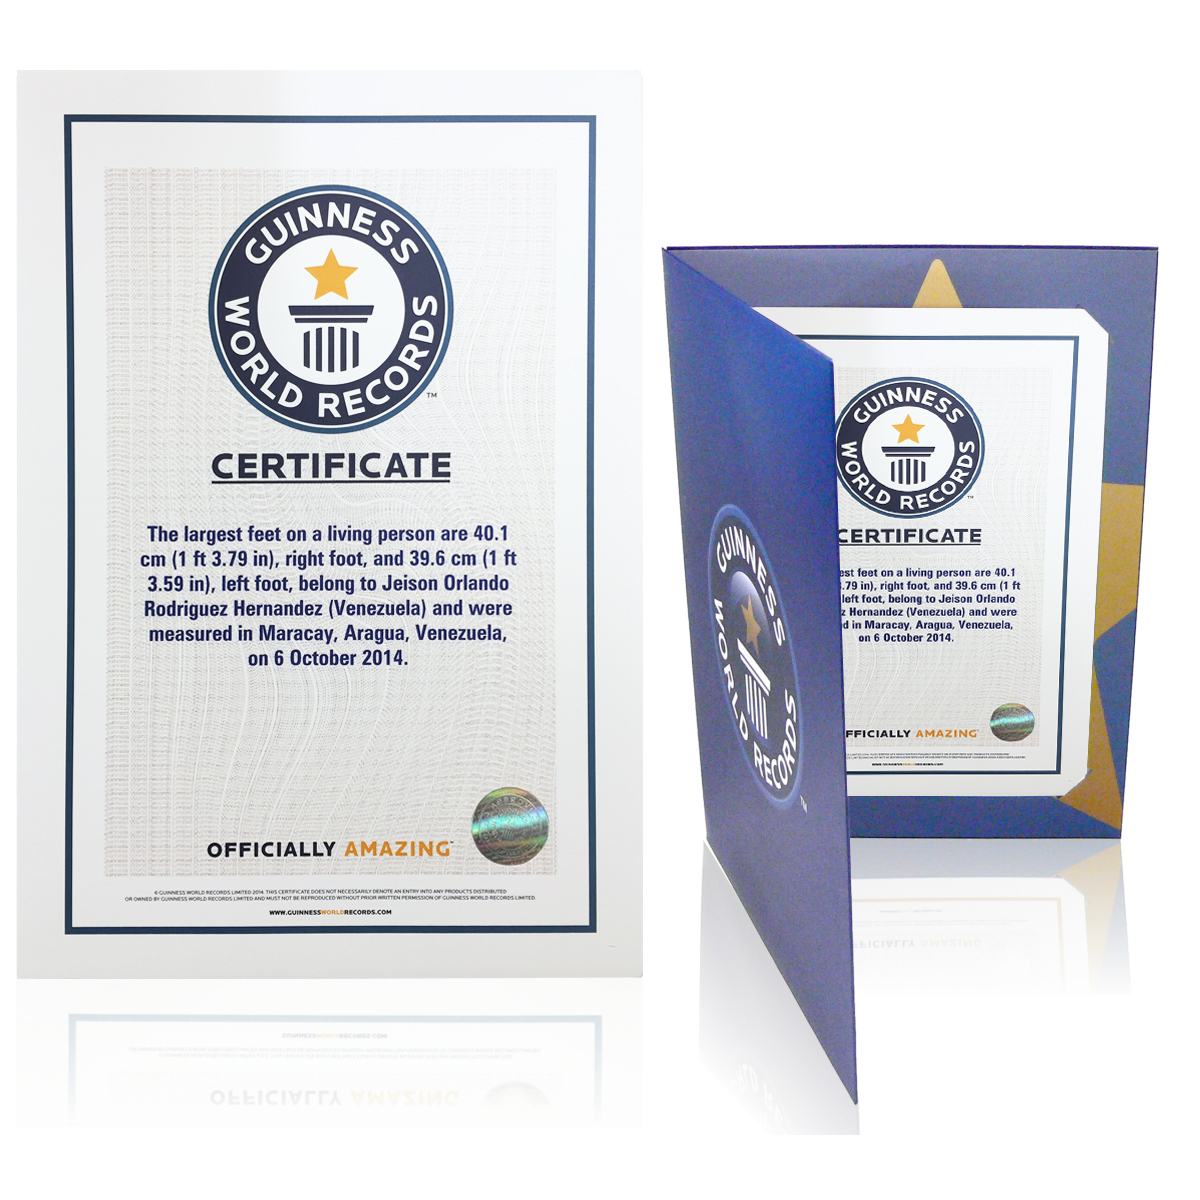 the guinness world records store certificates